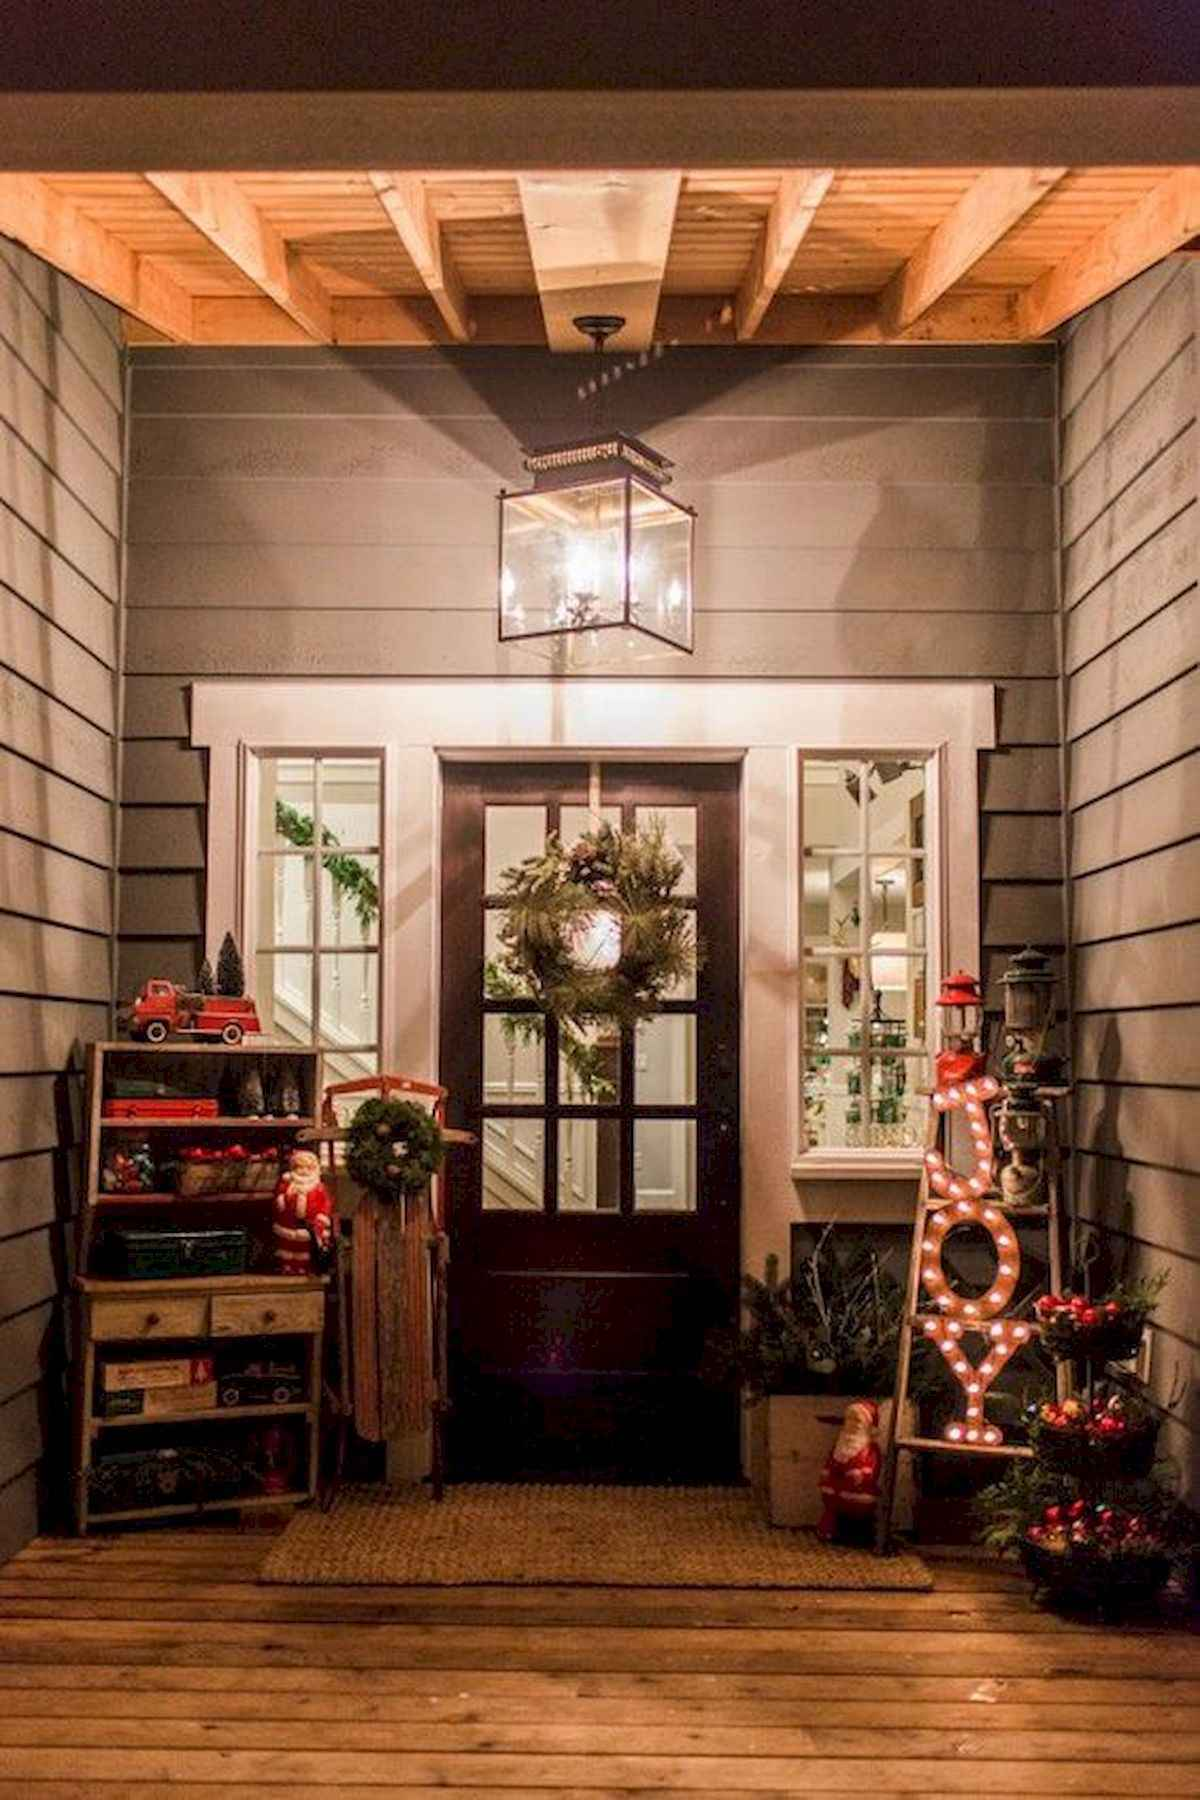 1200 1800 in 50 stunning front porch christmas lights decorations ideas